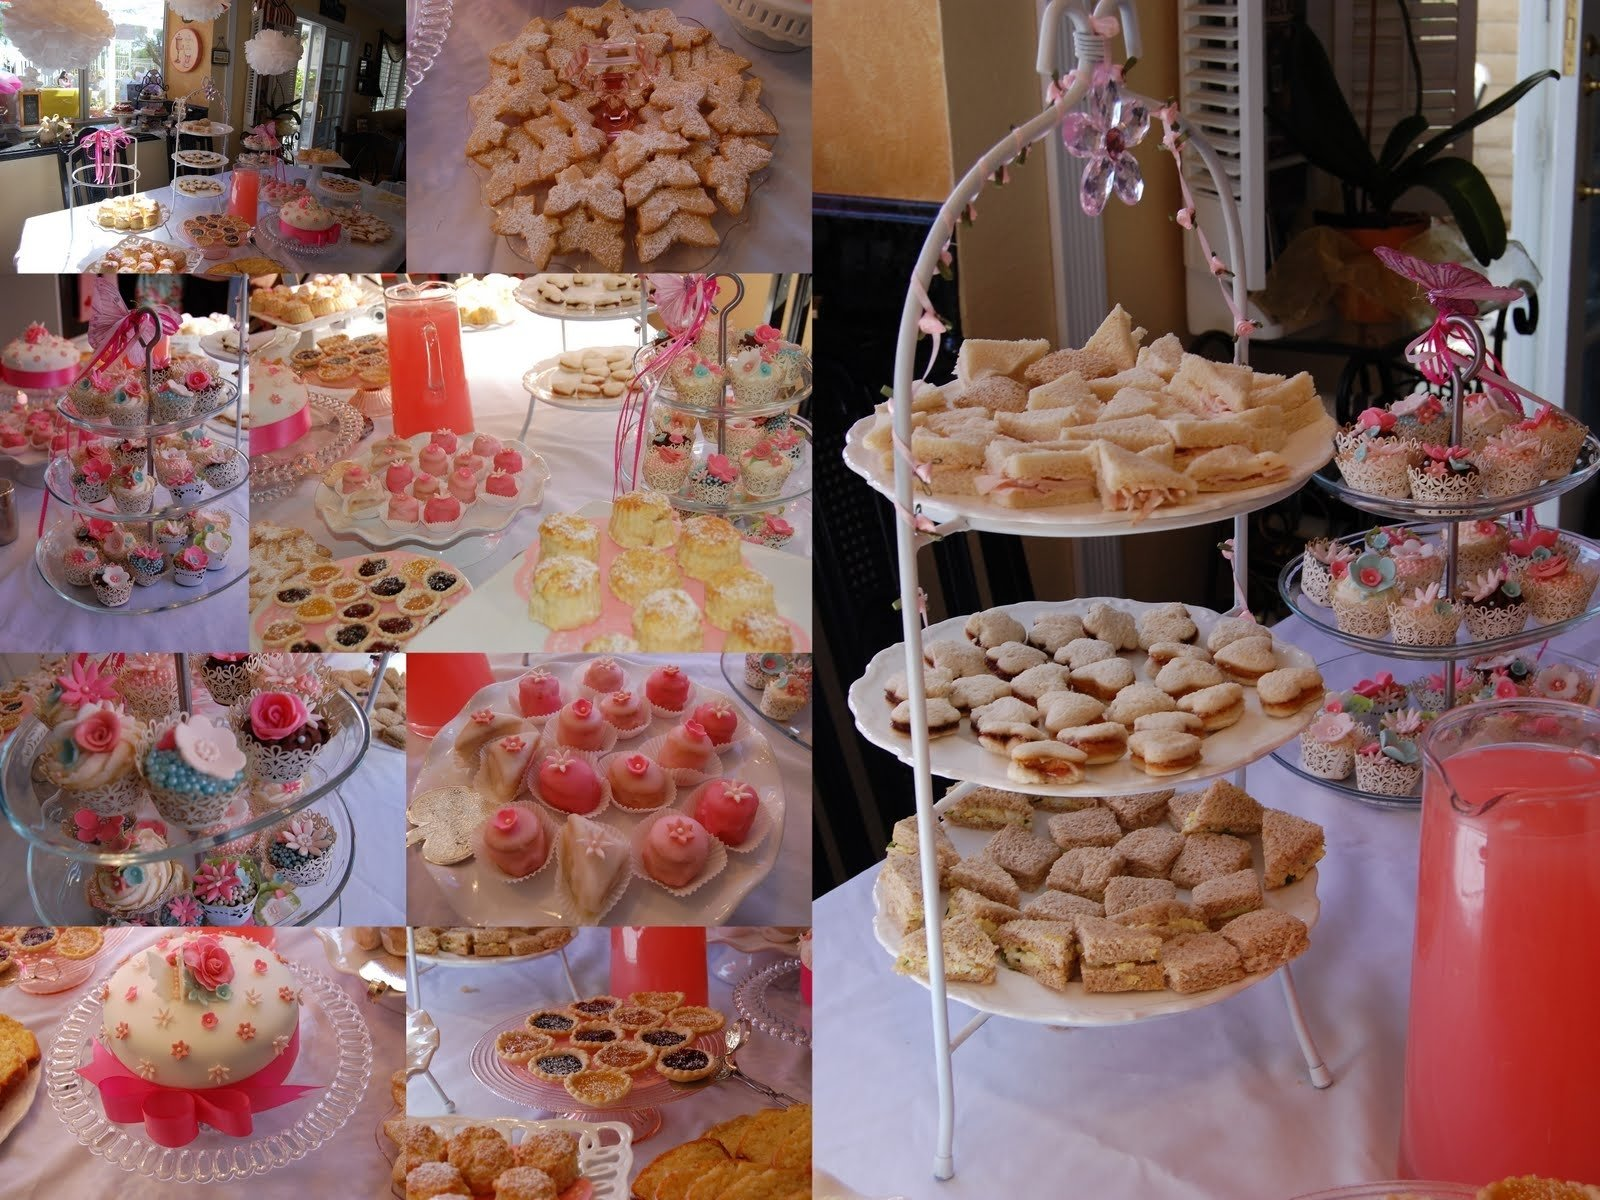 10 Ideal Tea Party Ideas For Women birthday e2 80 93 page 20 decorating of party ideas tea theme star 1 2020